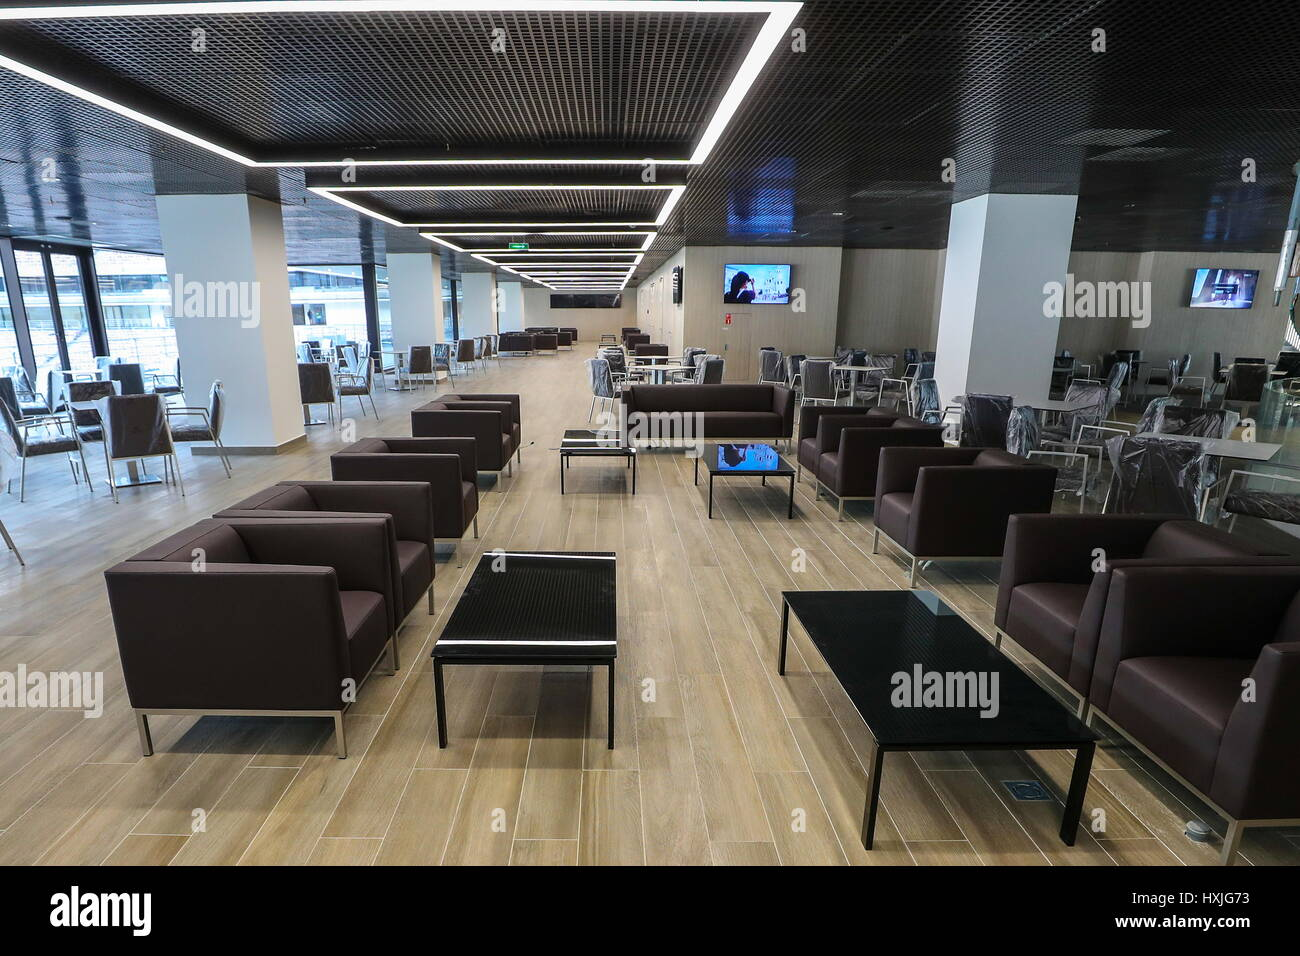 A VIP area at the Luzhniki Stadium that is being renovated ahead of the  2018 FIFA World Cup. Credit: Valery Sharifulin/TASS/Alamy Live News